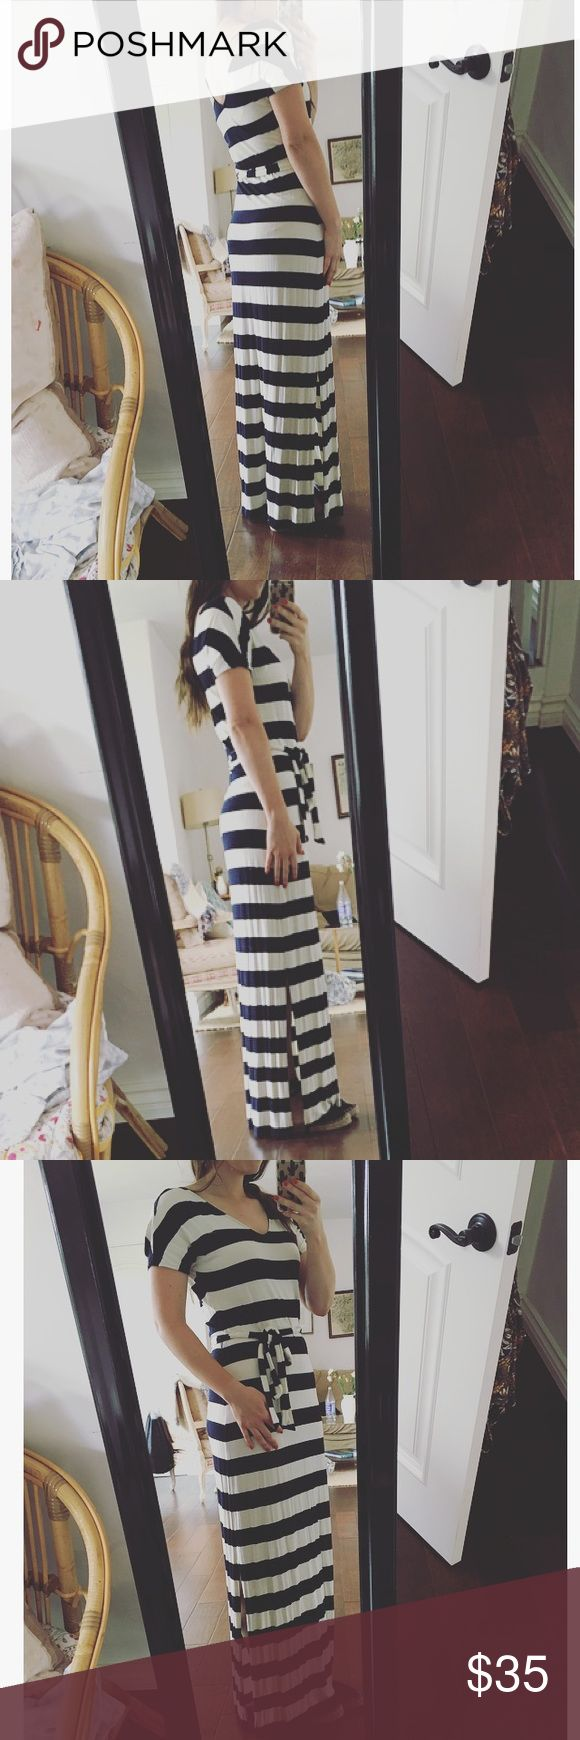 Nautical Maxi Dress Look amazing in an instant! This nautical striped maxi dress will be the most comfortable thing you own! Super faltering with a tie at the waist. Incredibly soft and made of 95% viscose and 5% spandex. Runs a little big. Dark navy and off white. I also have this in black! Same size! Let me know if you're interested! Banana Republic Dresses Maxi